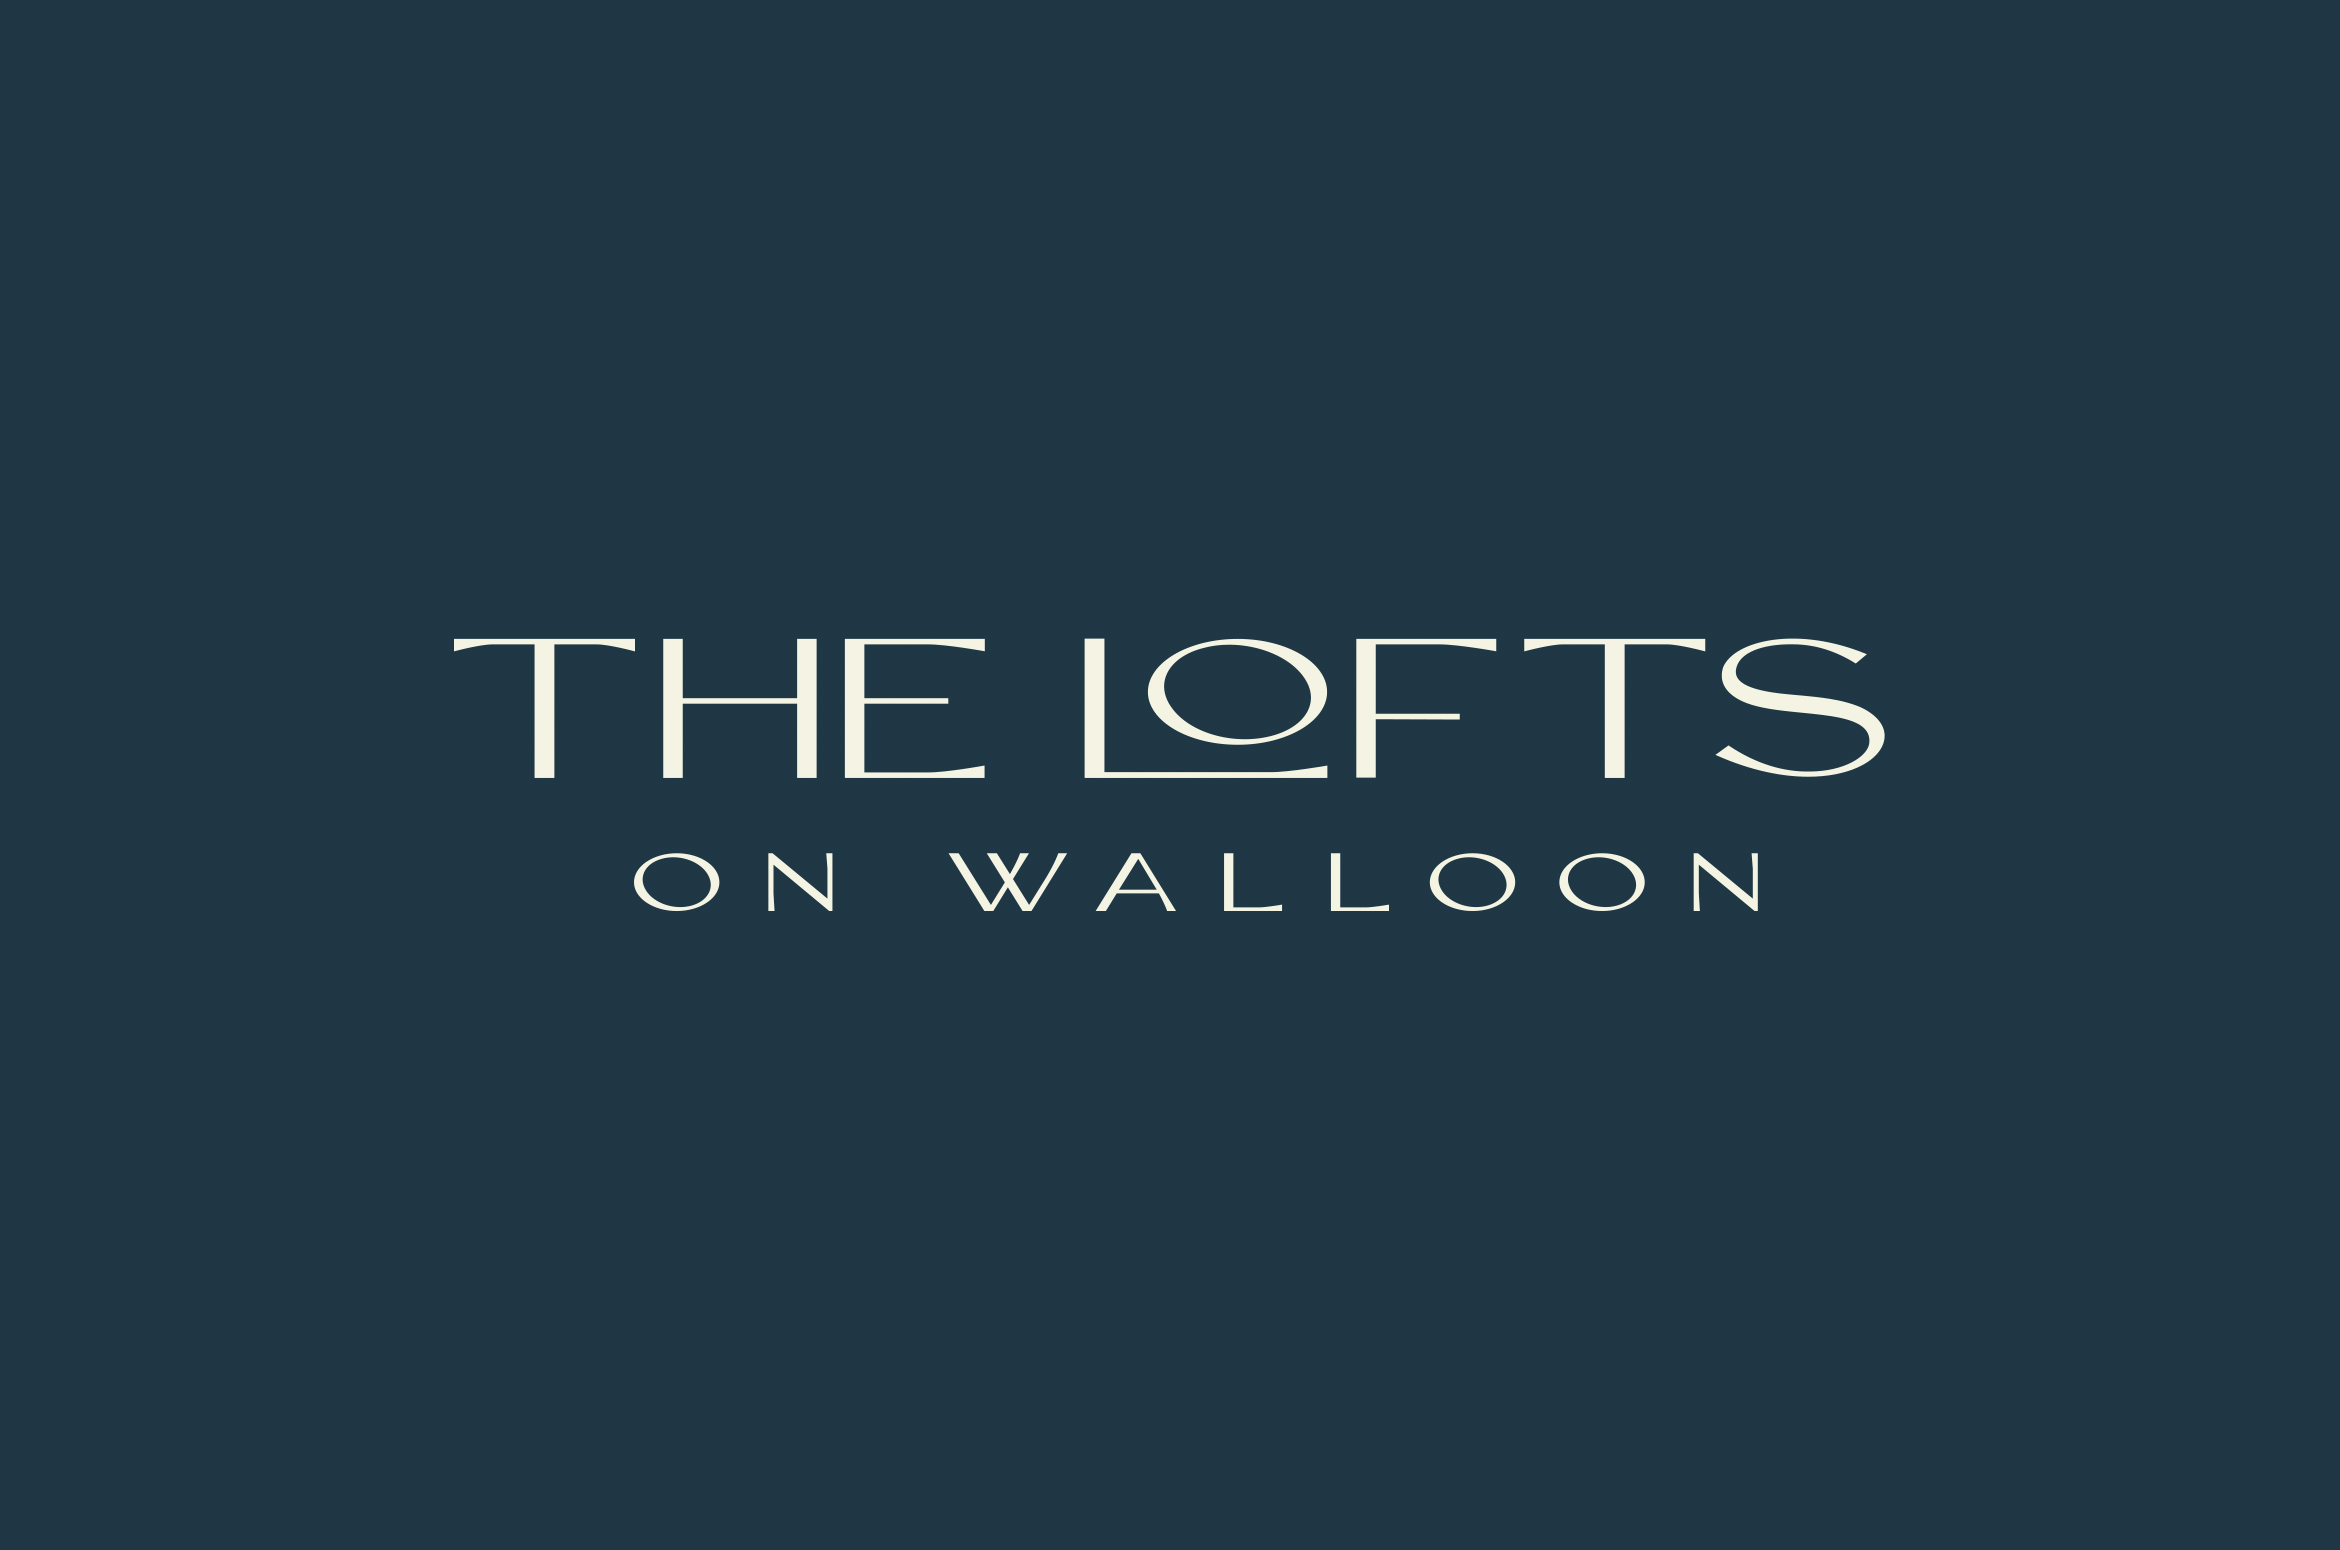 Logo and branding design for Lofts on Walloon